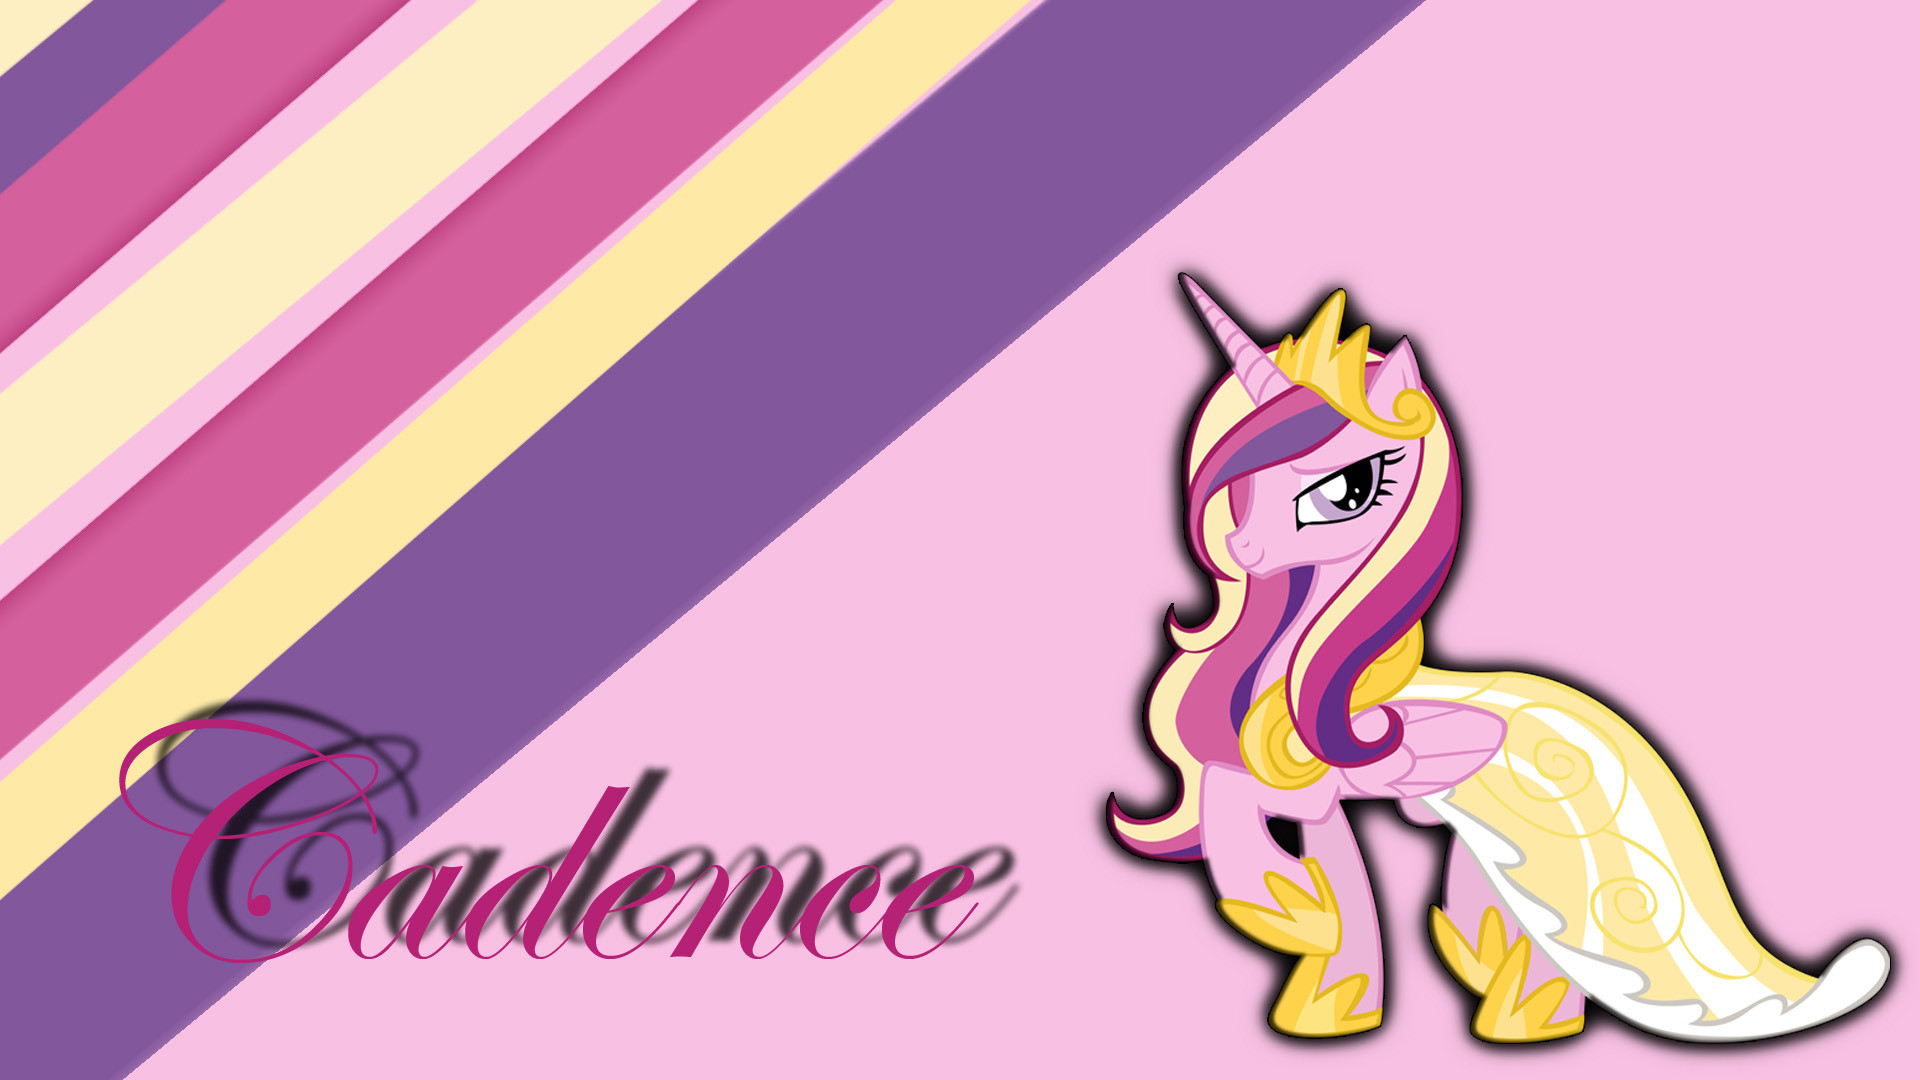 1920x1080 Showing Gallery For Mlp Cadence Wallpaper 0 HTML code.  mlp_fim_princess_cadence_wallpaper_by_apoljak-d4snp2p